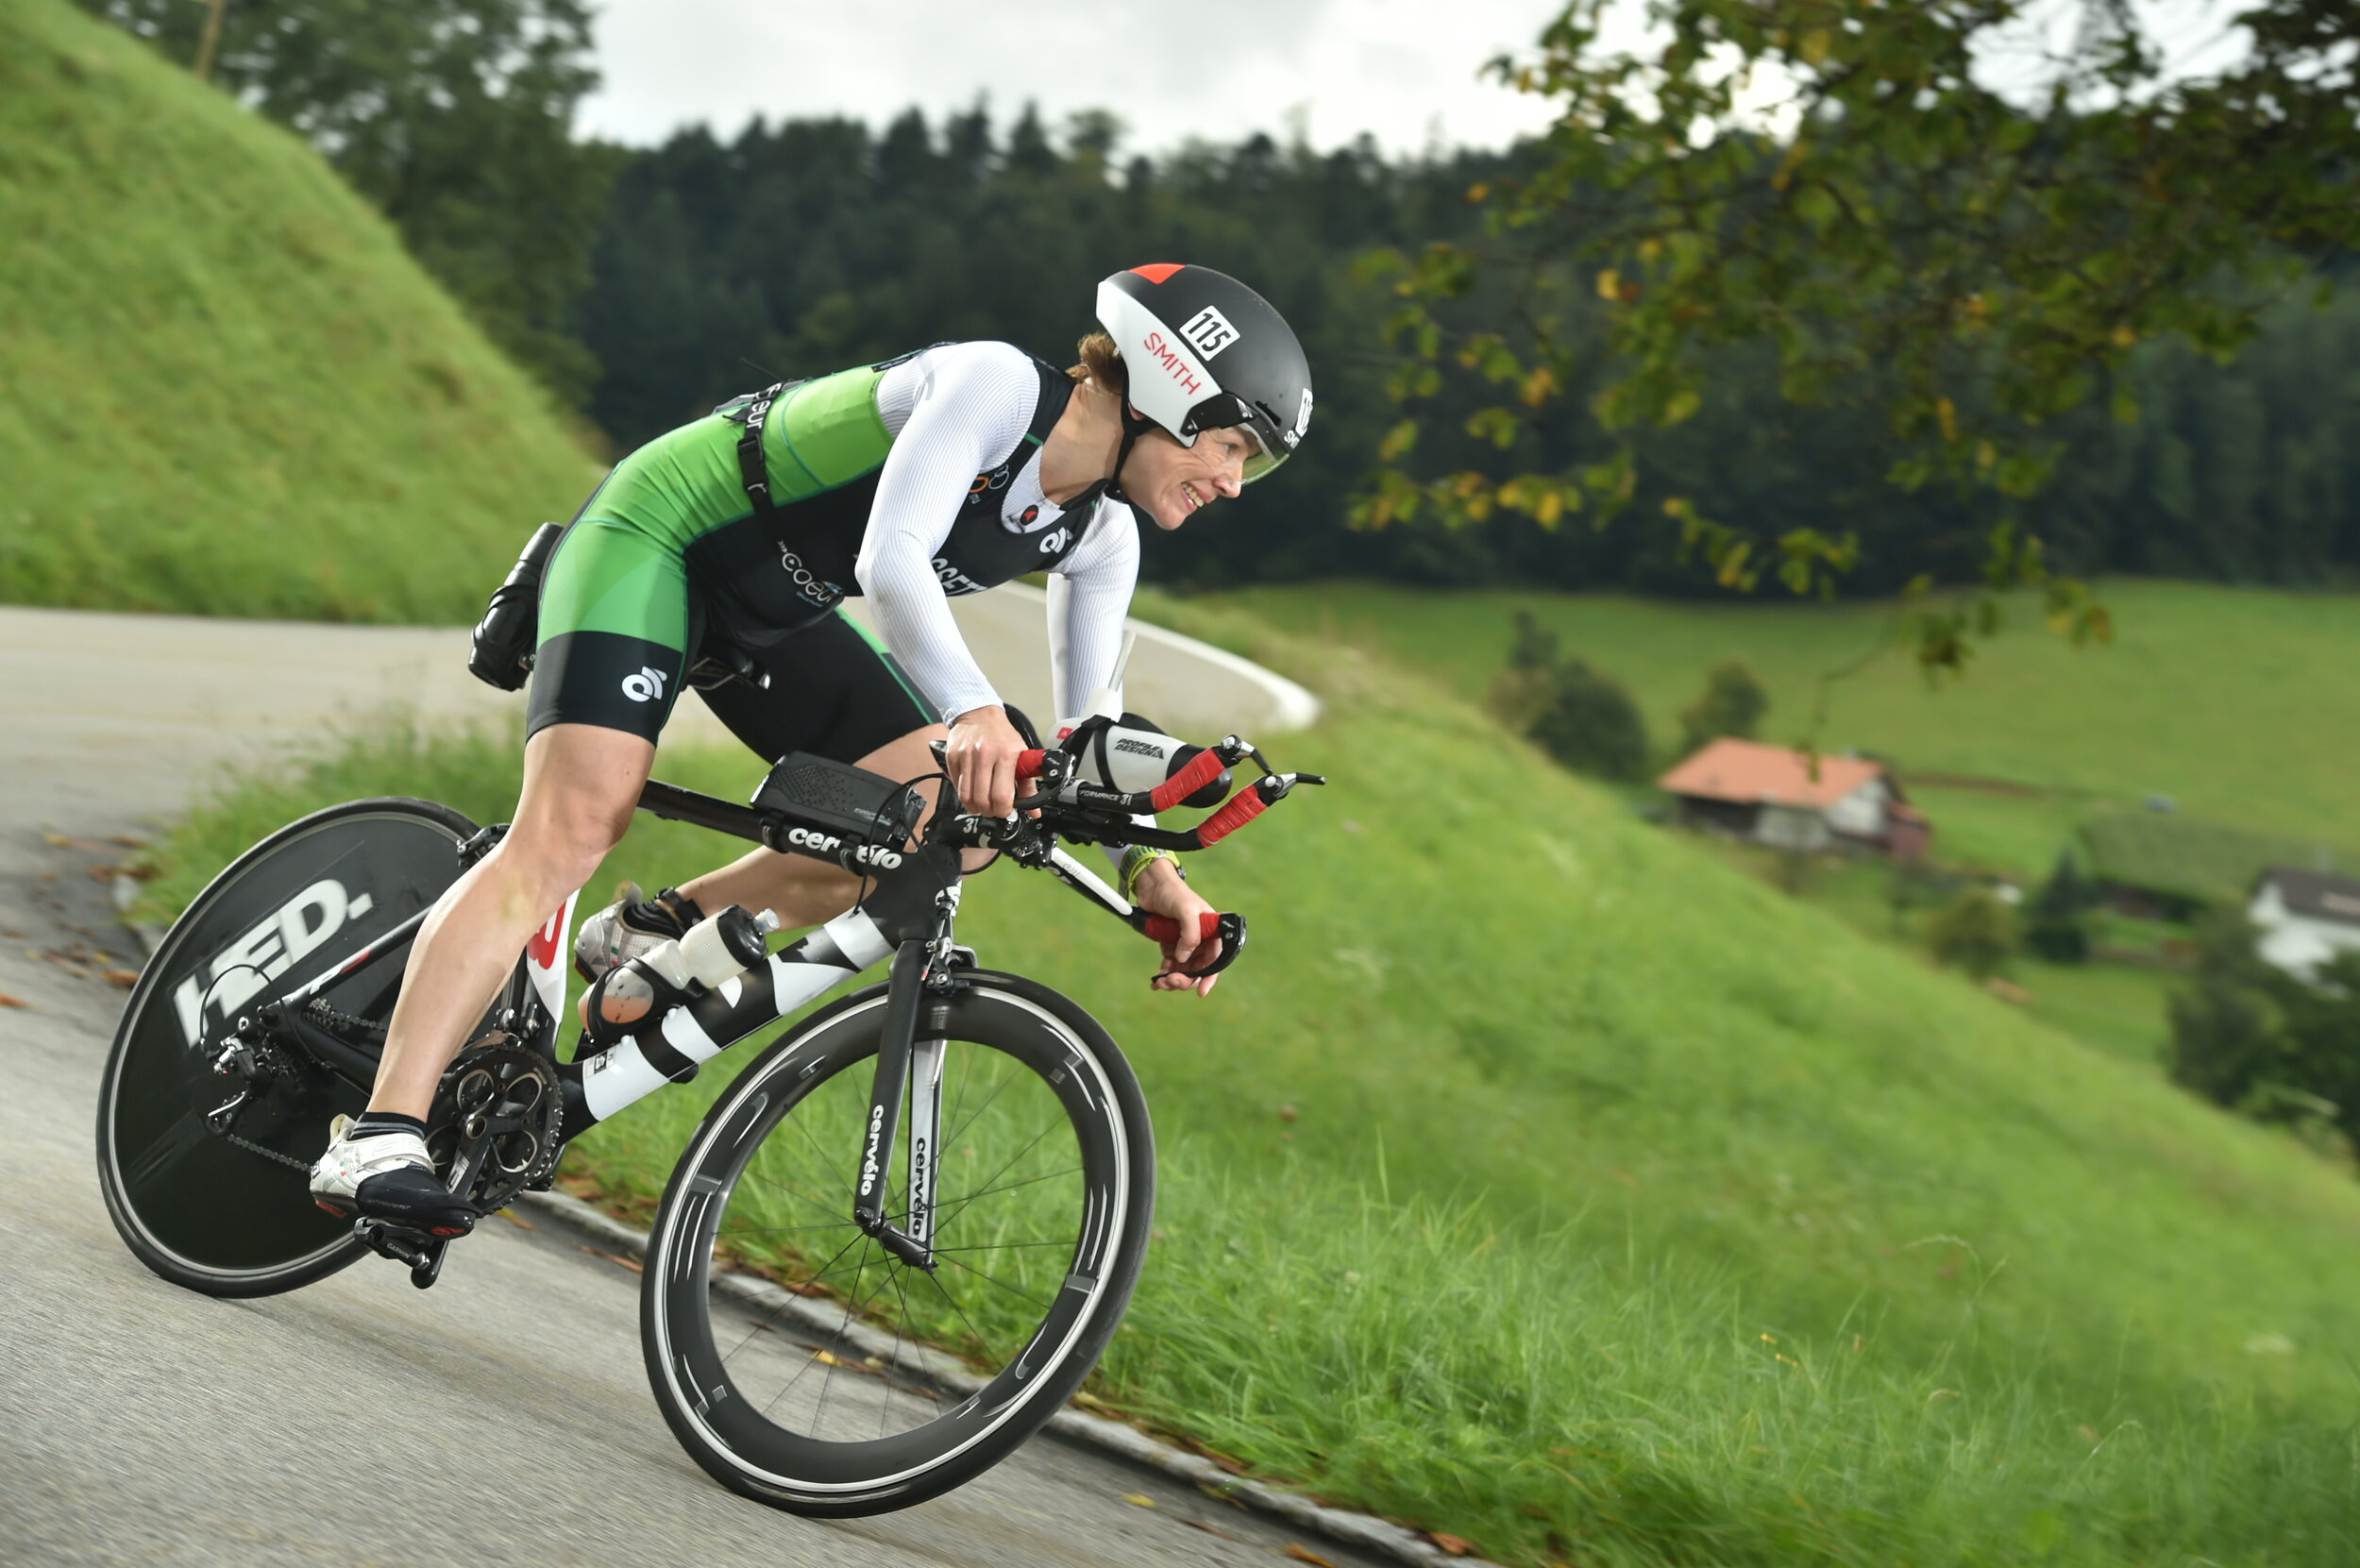 Coach_Terry_Wilson_Pursuit_of_The_Perfect_Race_Powerman_ Zofingen_Duathlon_Derdre_Hassett_2.jpg